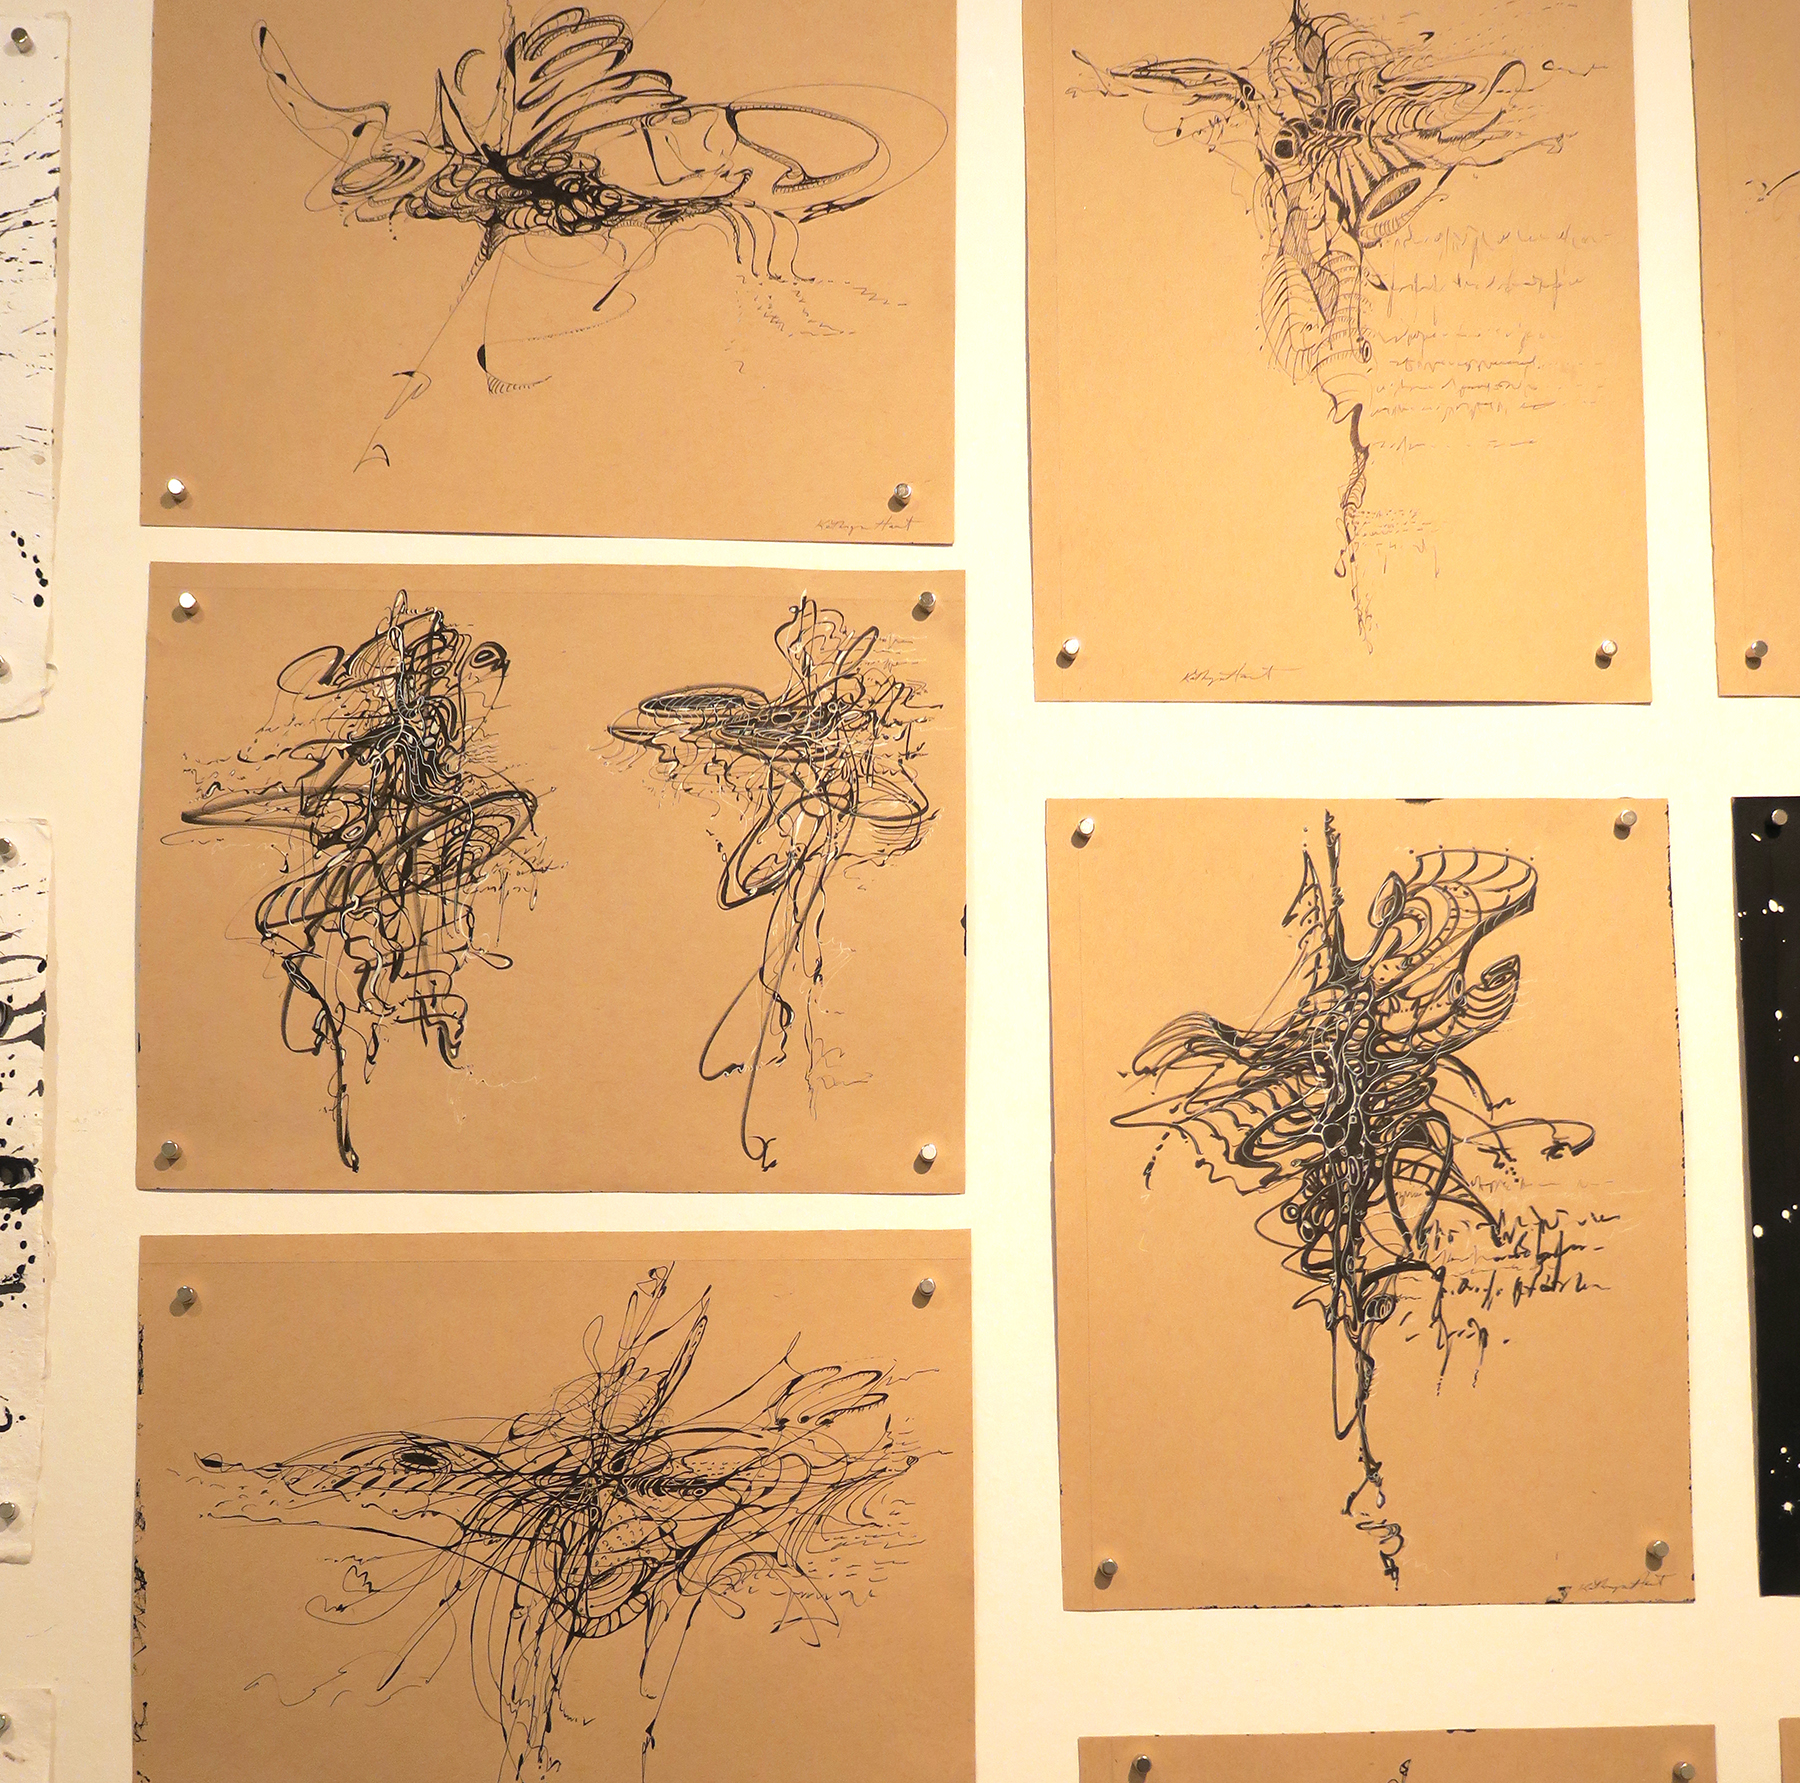 Kathryn Hart, Ink Drawings in Daunting Transitions Solo Show, Krakow 2018